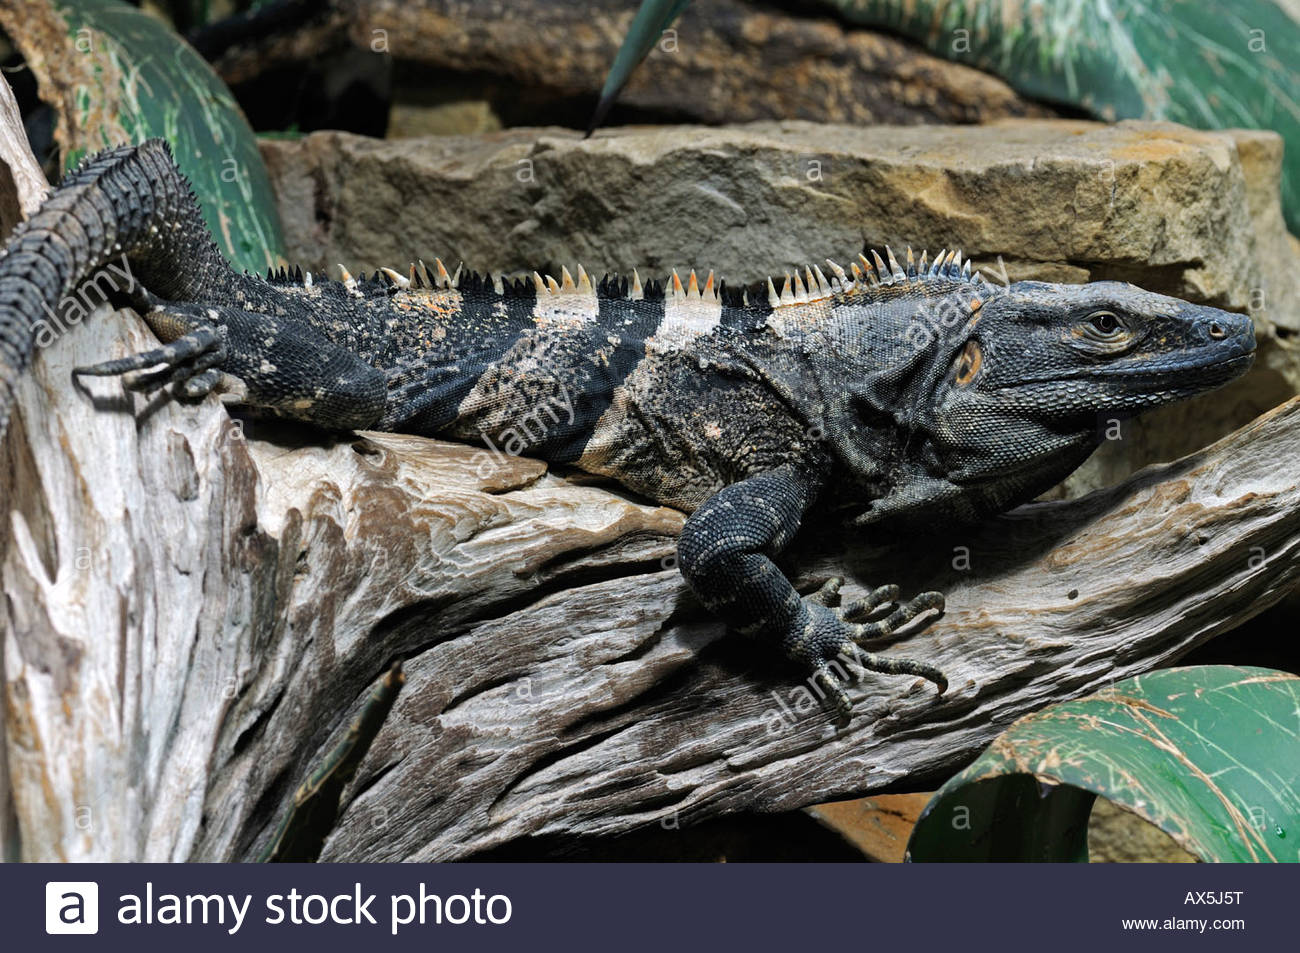 Black Spiny Tailed Iguana svg #12, Download drawings